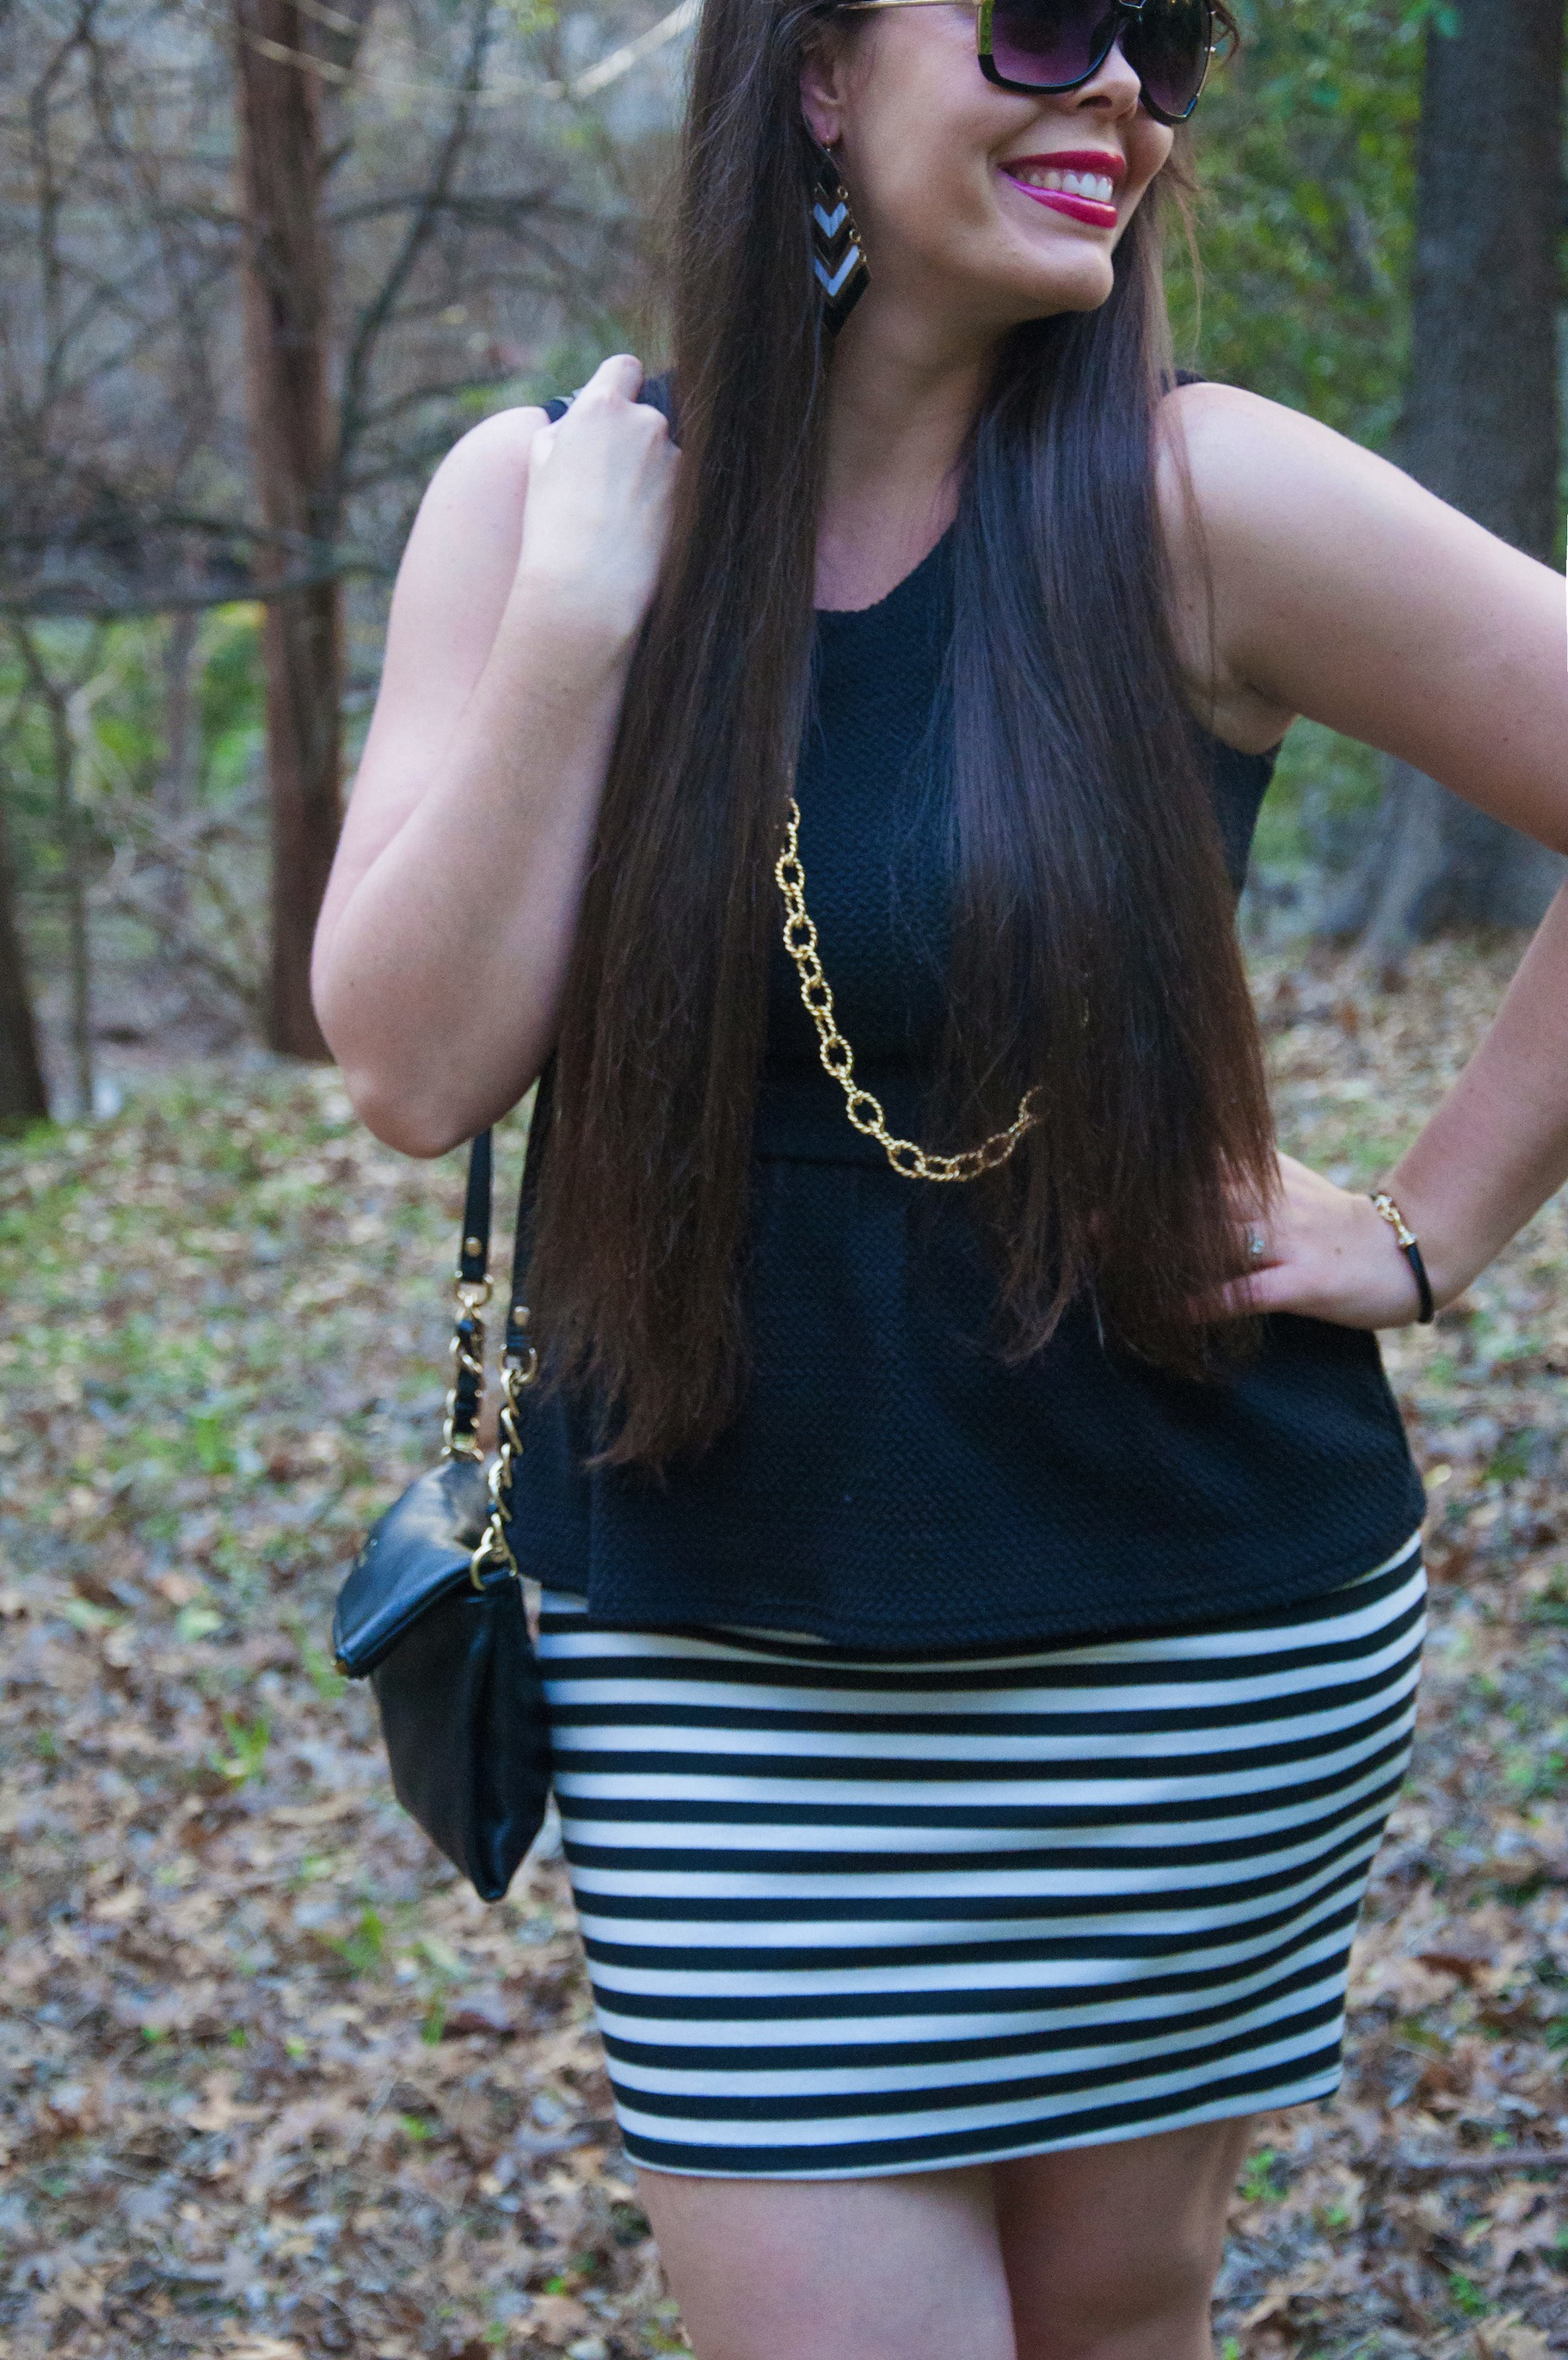 Black and white skirt with peplum top